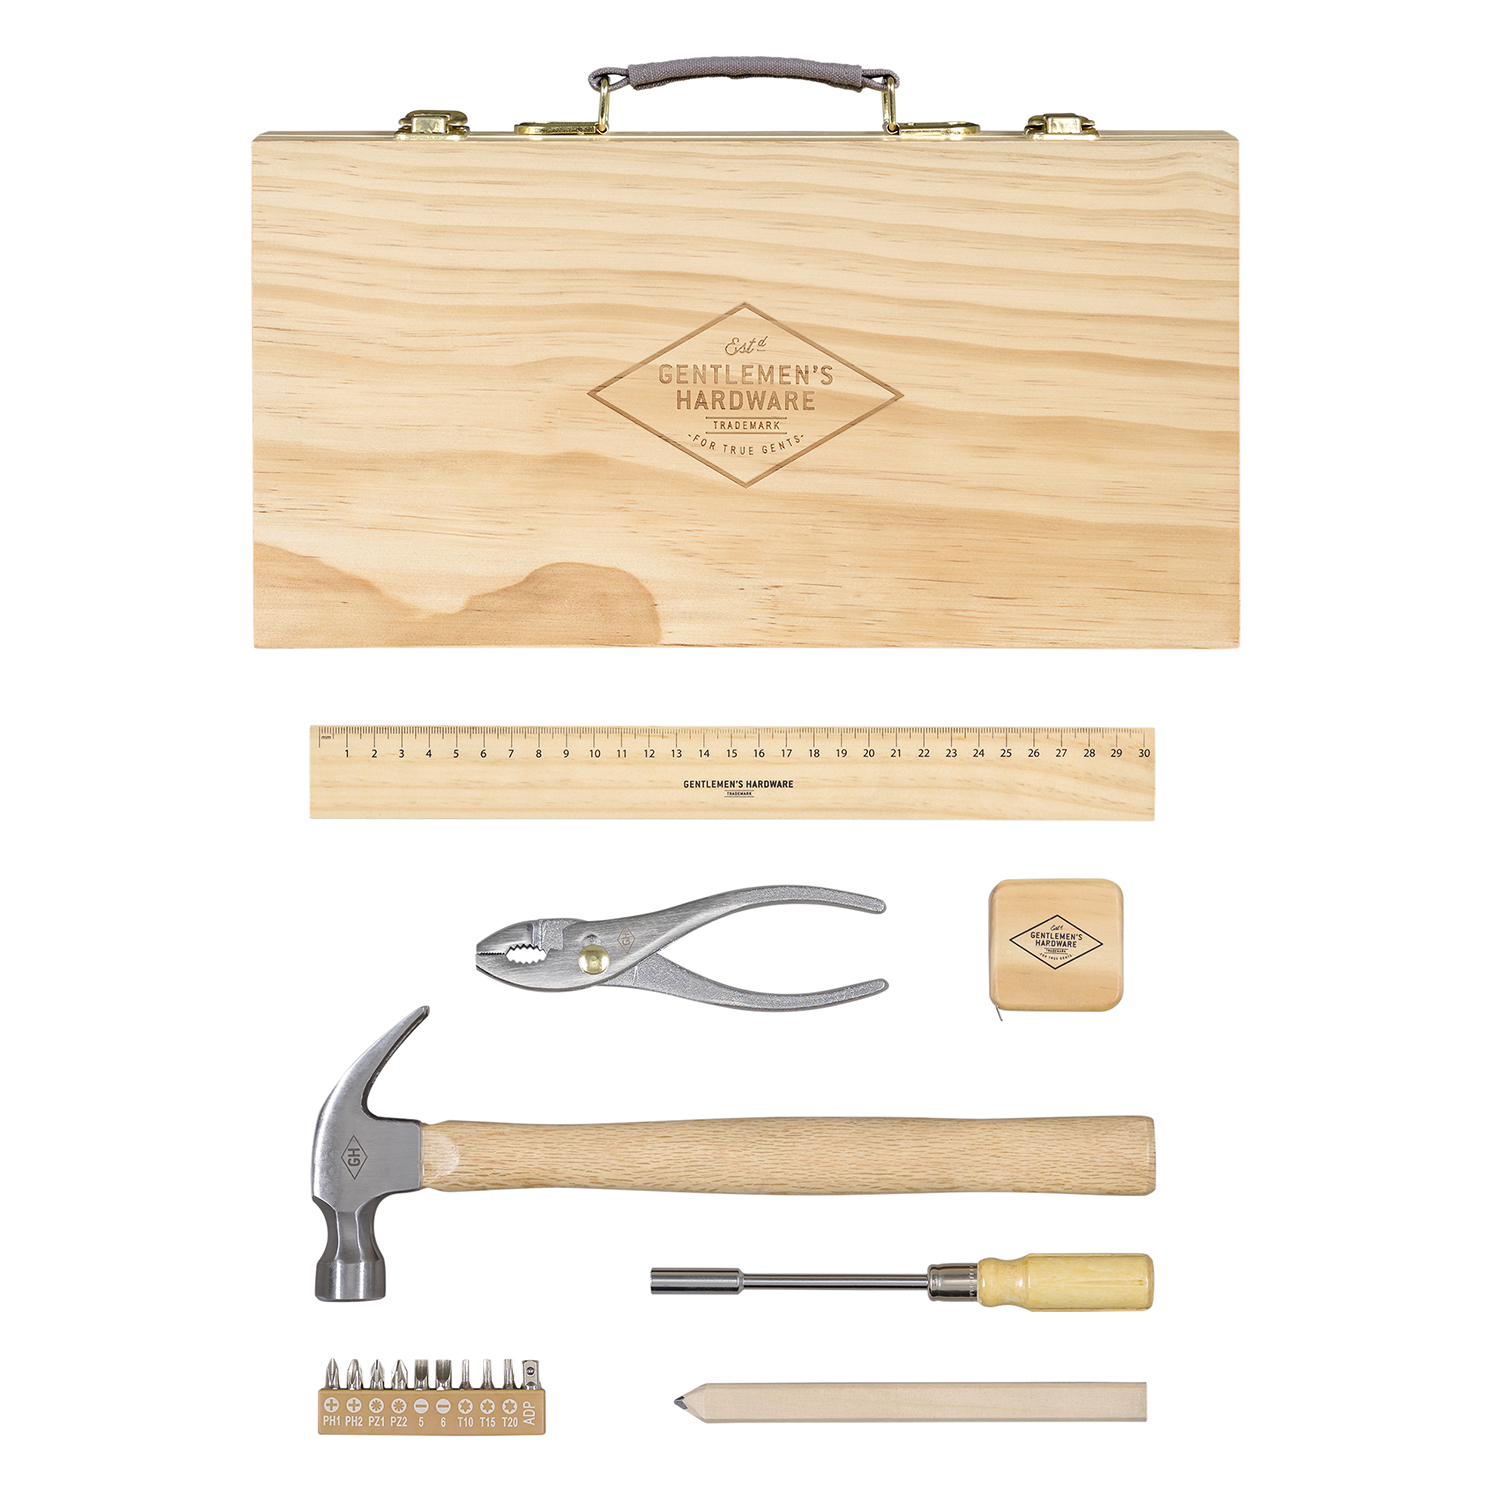 Gentlemen's Hardware – 16 Piece Tool Kit in Beech Wooden Box with Handle